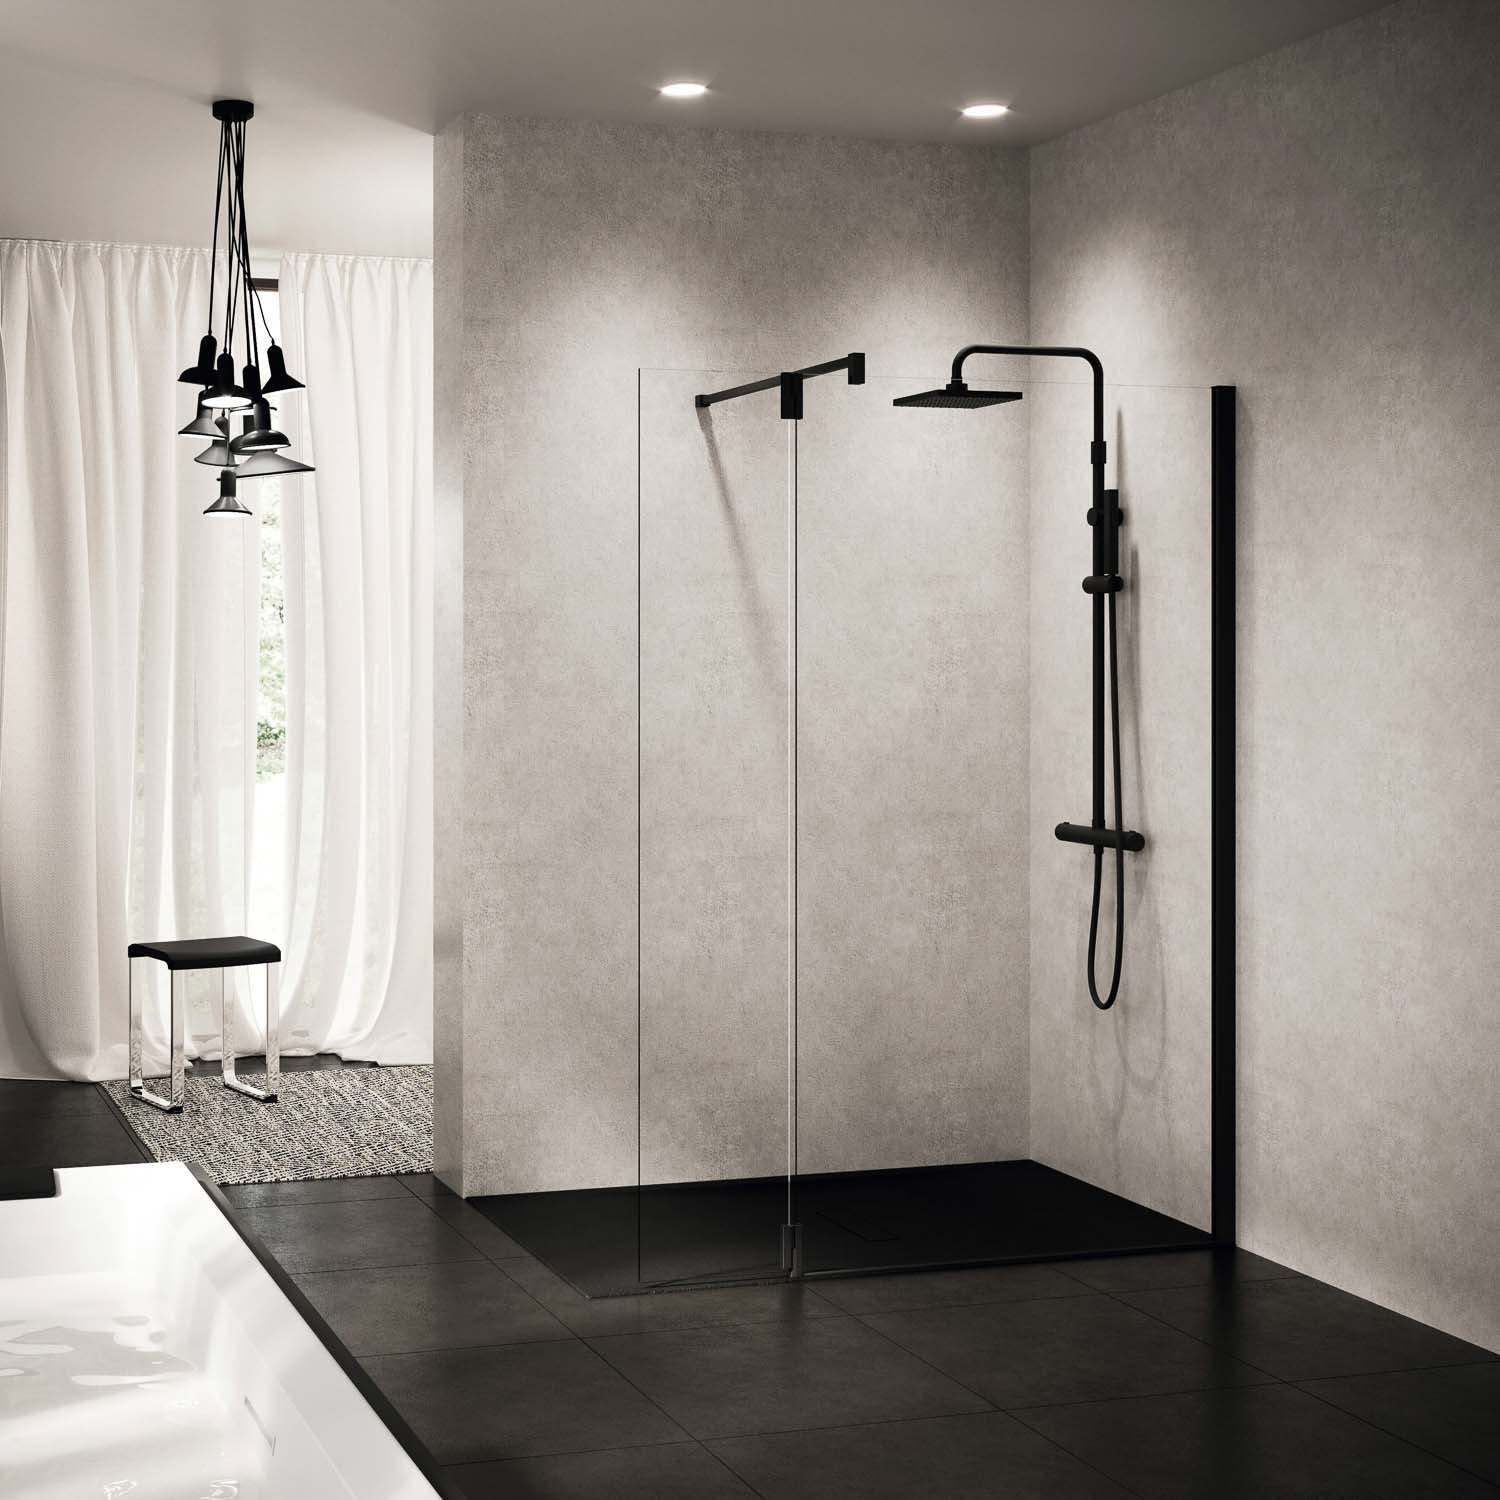 370mm Ergo Wet Room Deflector Panel Clear Glass with a matt black finish lifestyle image